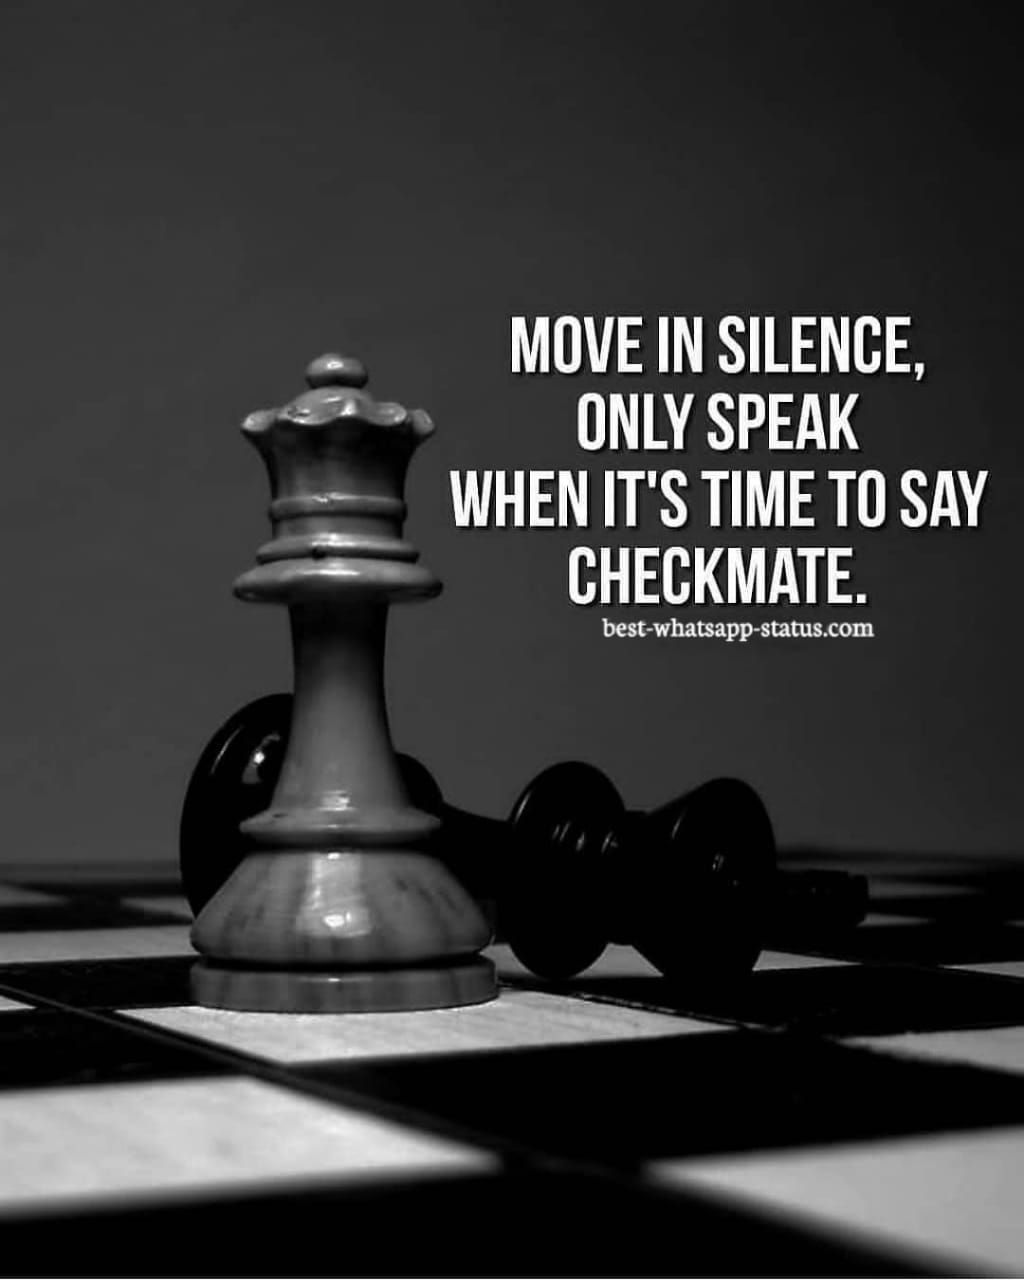 Best Positive Thoughts About Life New Life Whatsapp Status Best Quotes Silence Quotes Chess Quotes Move In Silence